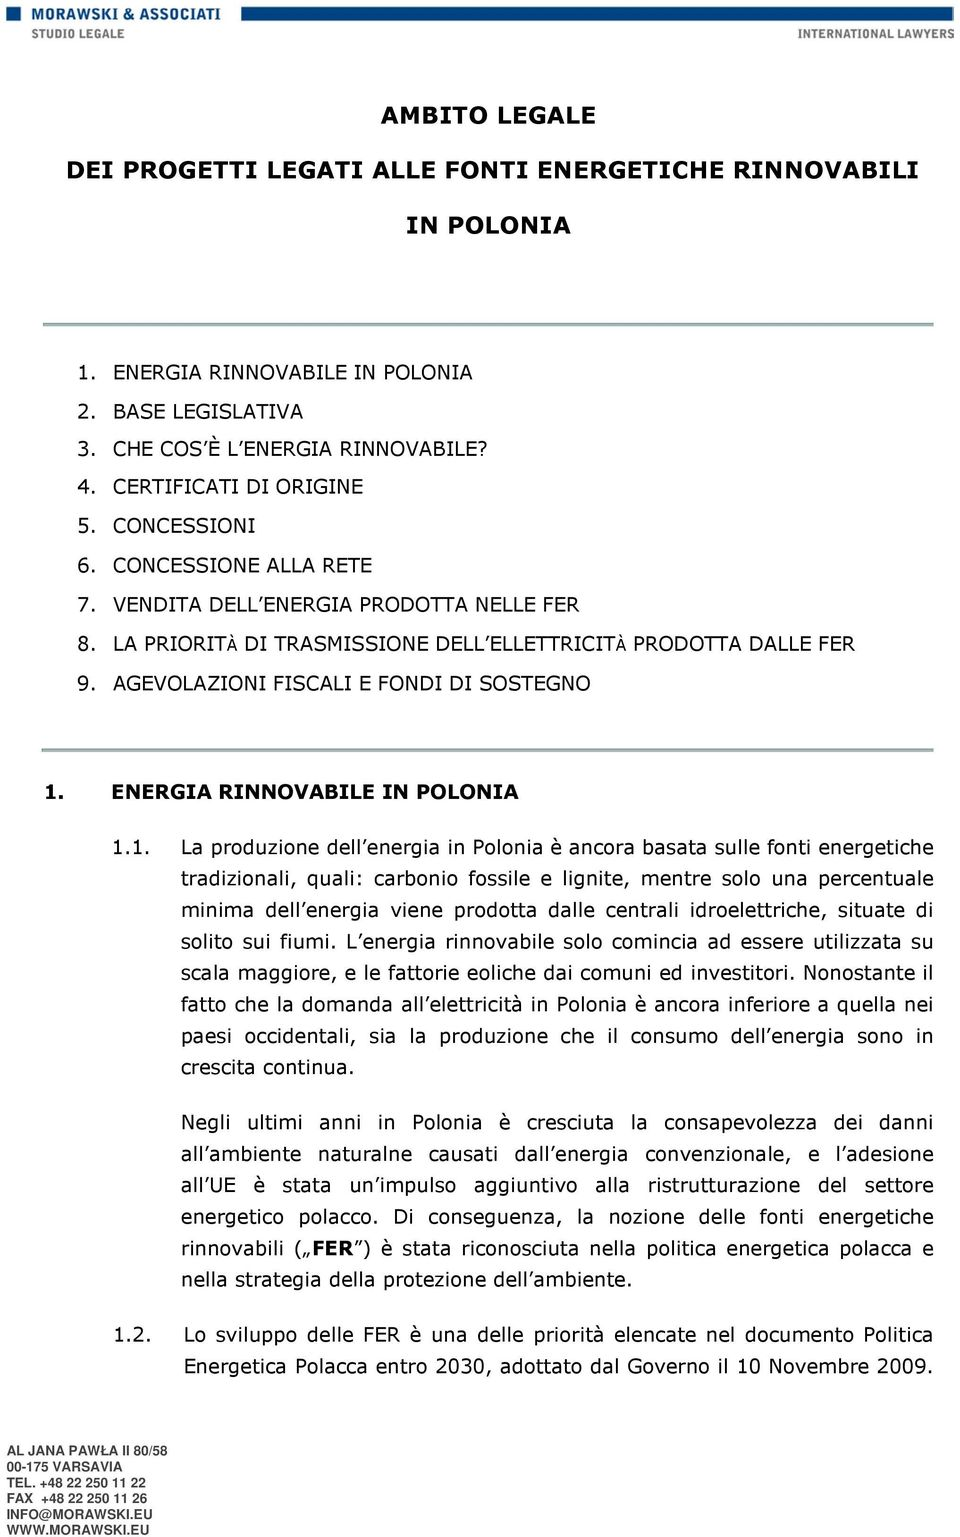 ENERGIA RINNOVABILE IN POLONIA 1.